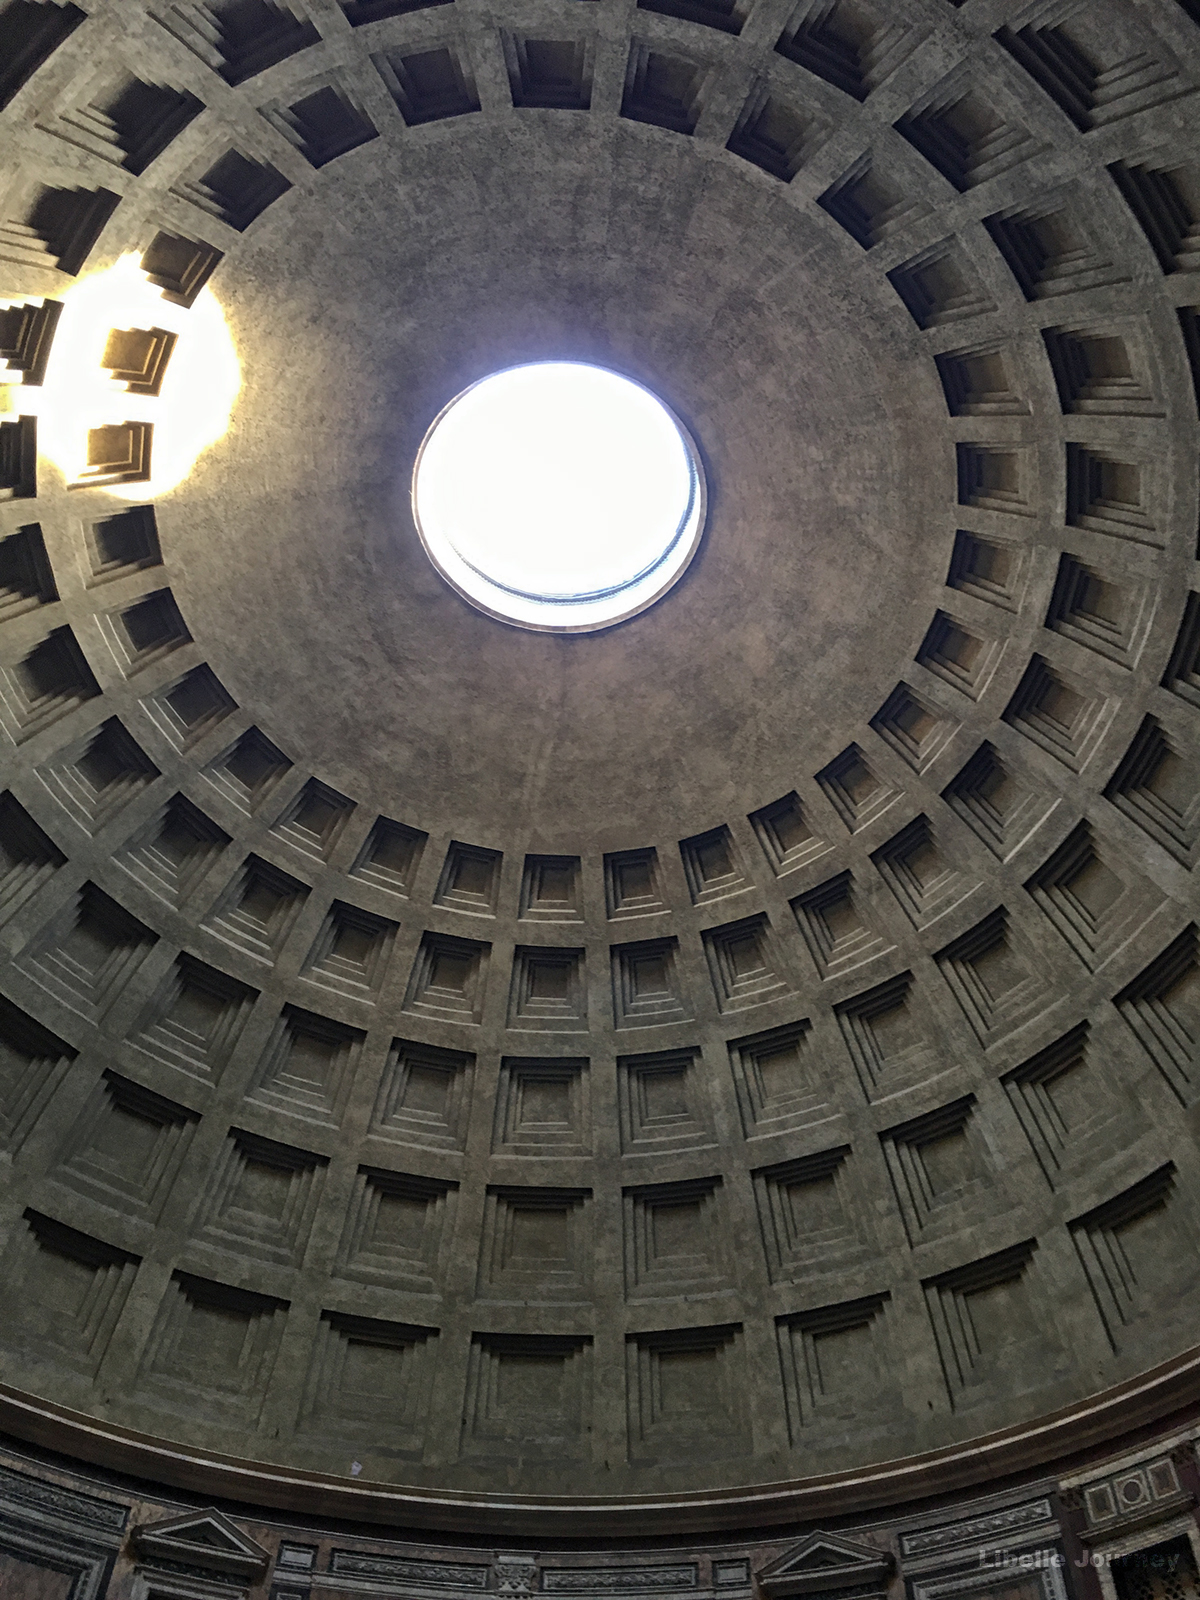 Oculus in the Pantheon's ceiling